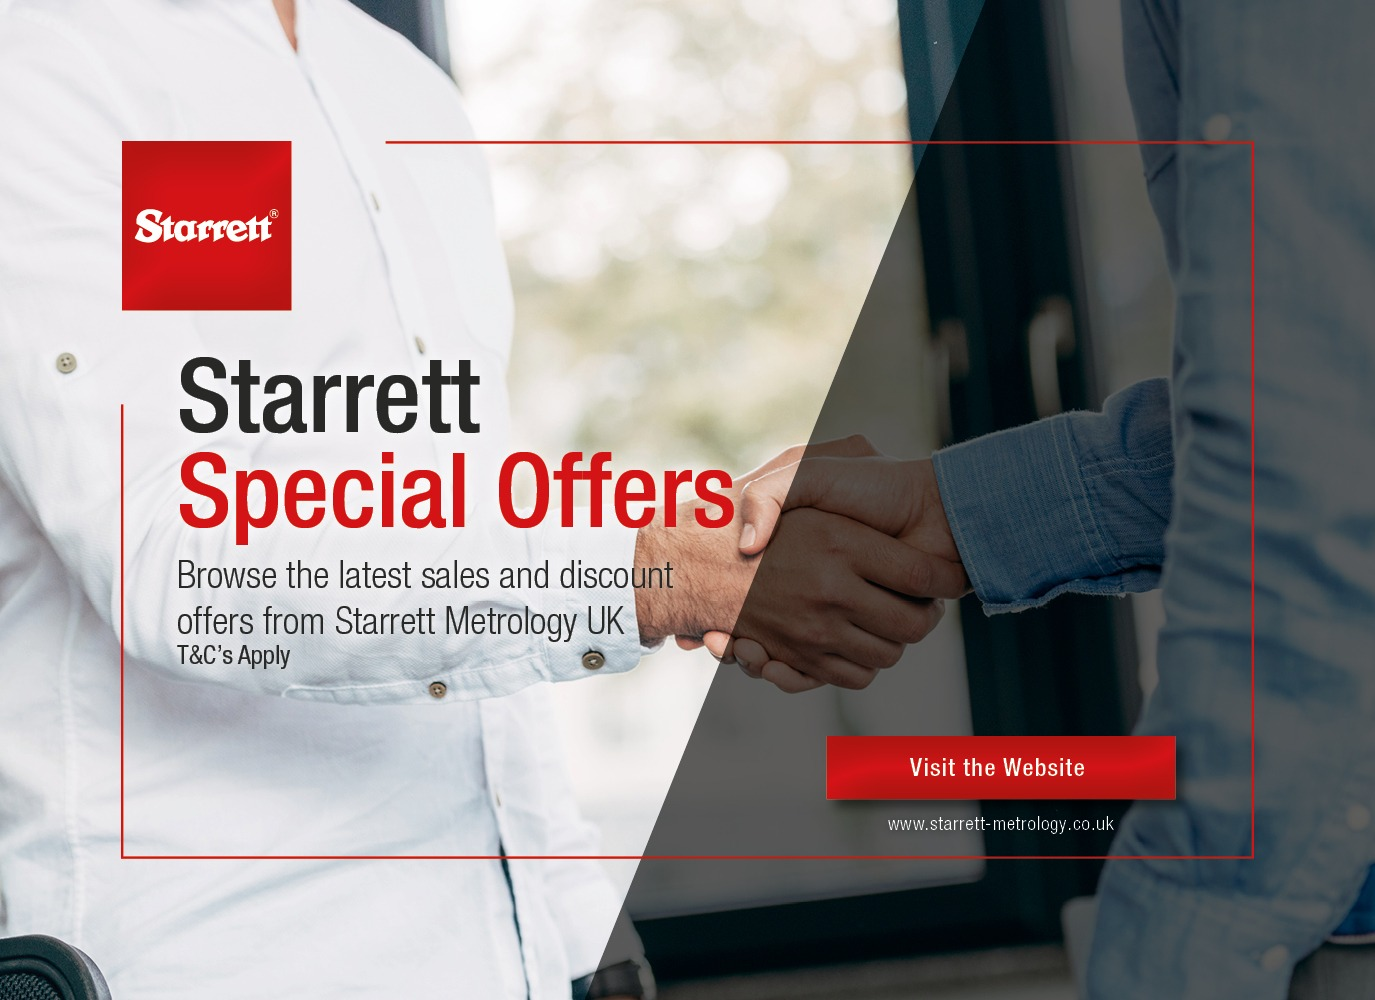 1916, 1916, special offers, special-offers.jpg, 199778, https://starrett-metrology.co.uk/wp-content/uploads/2020/11/special-offers.jpg, https://starrett-metrology.co.uk/products/special-offers-2/, , 5, , , special-offers-2, inherit, 157, 2020-11-27 10:44:06, 2020-11-27 10:44:06, 0, image/jpeg, image, jpeg, https://starrett-metrology.co.uk/wp-includes/images/media/default.png, 1375, 1000, Array